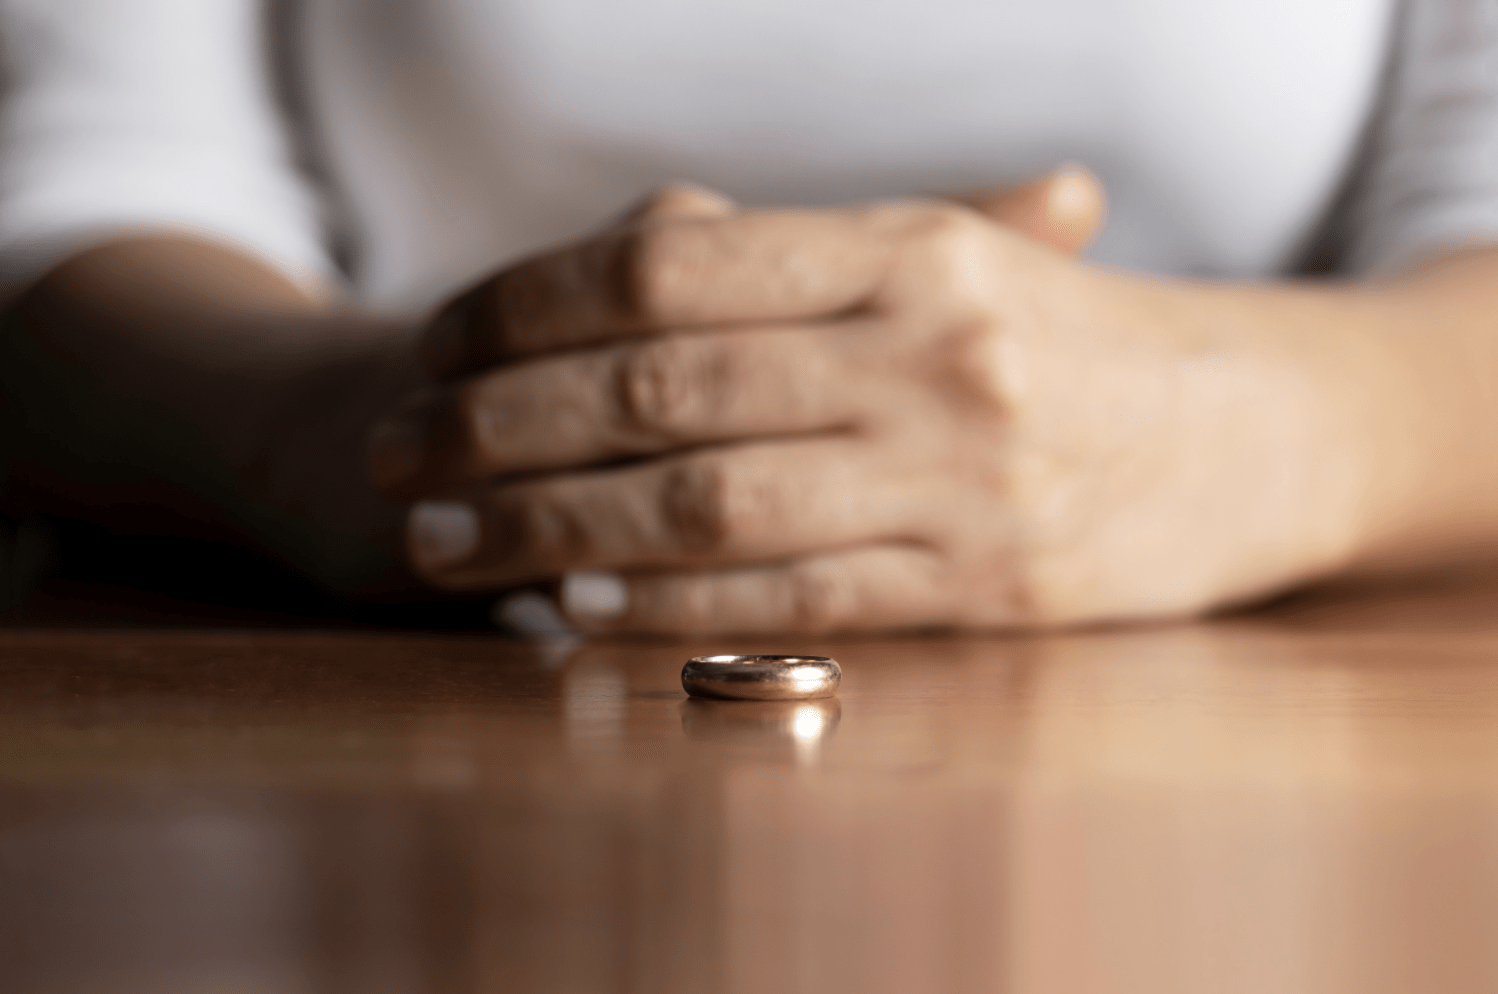 Someone with their wedding ring resting on the table